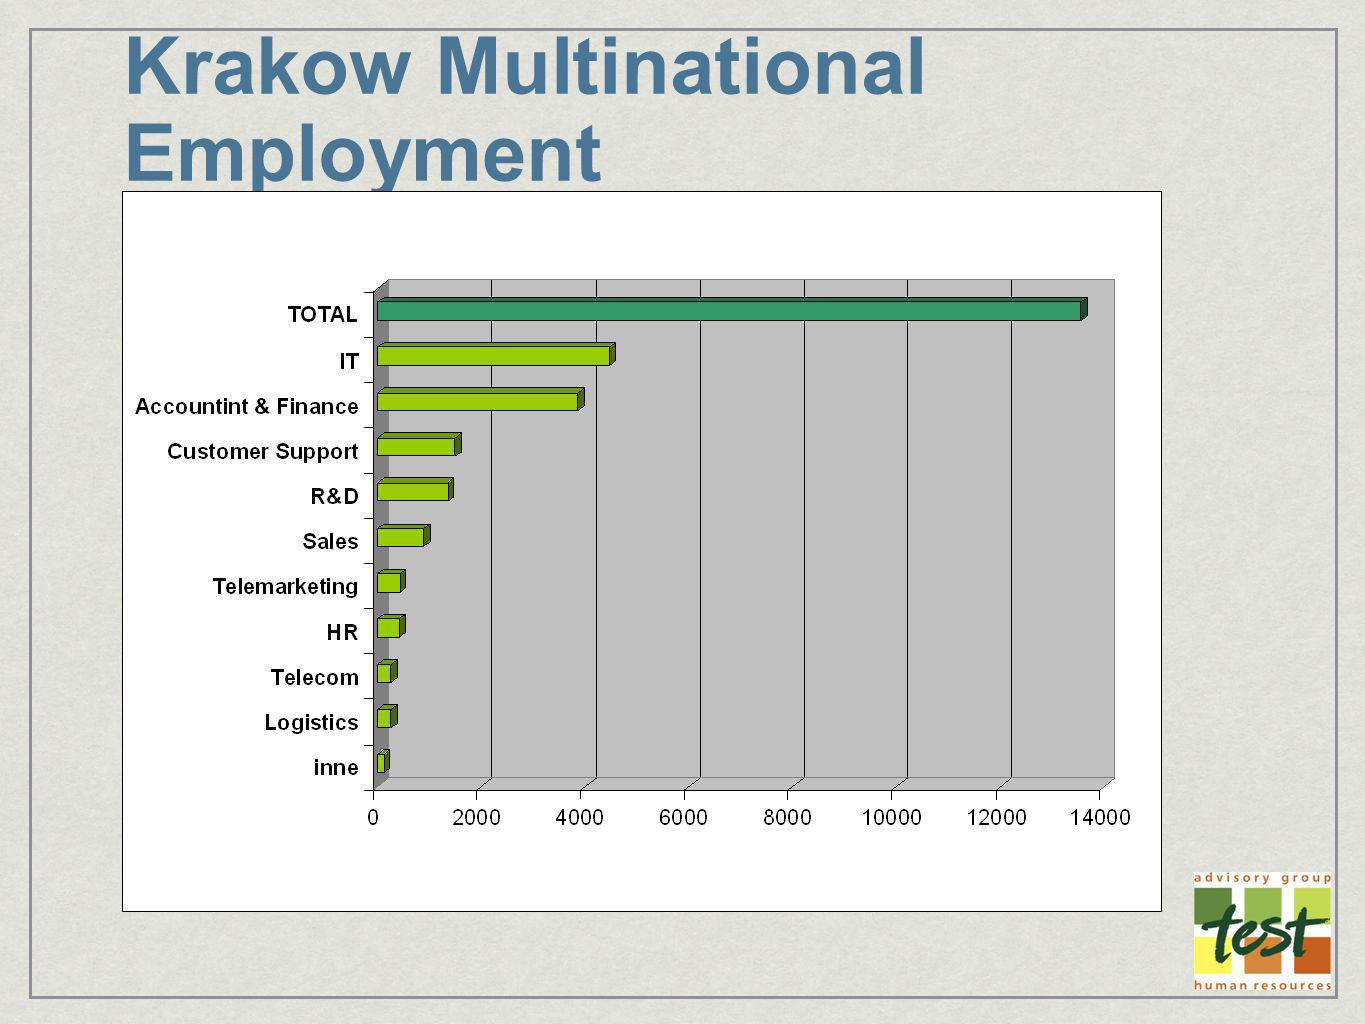 Krakow Multinational Employment